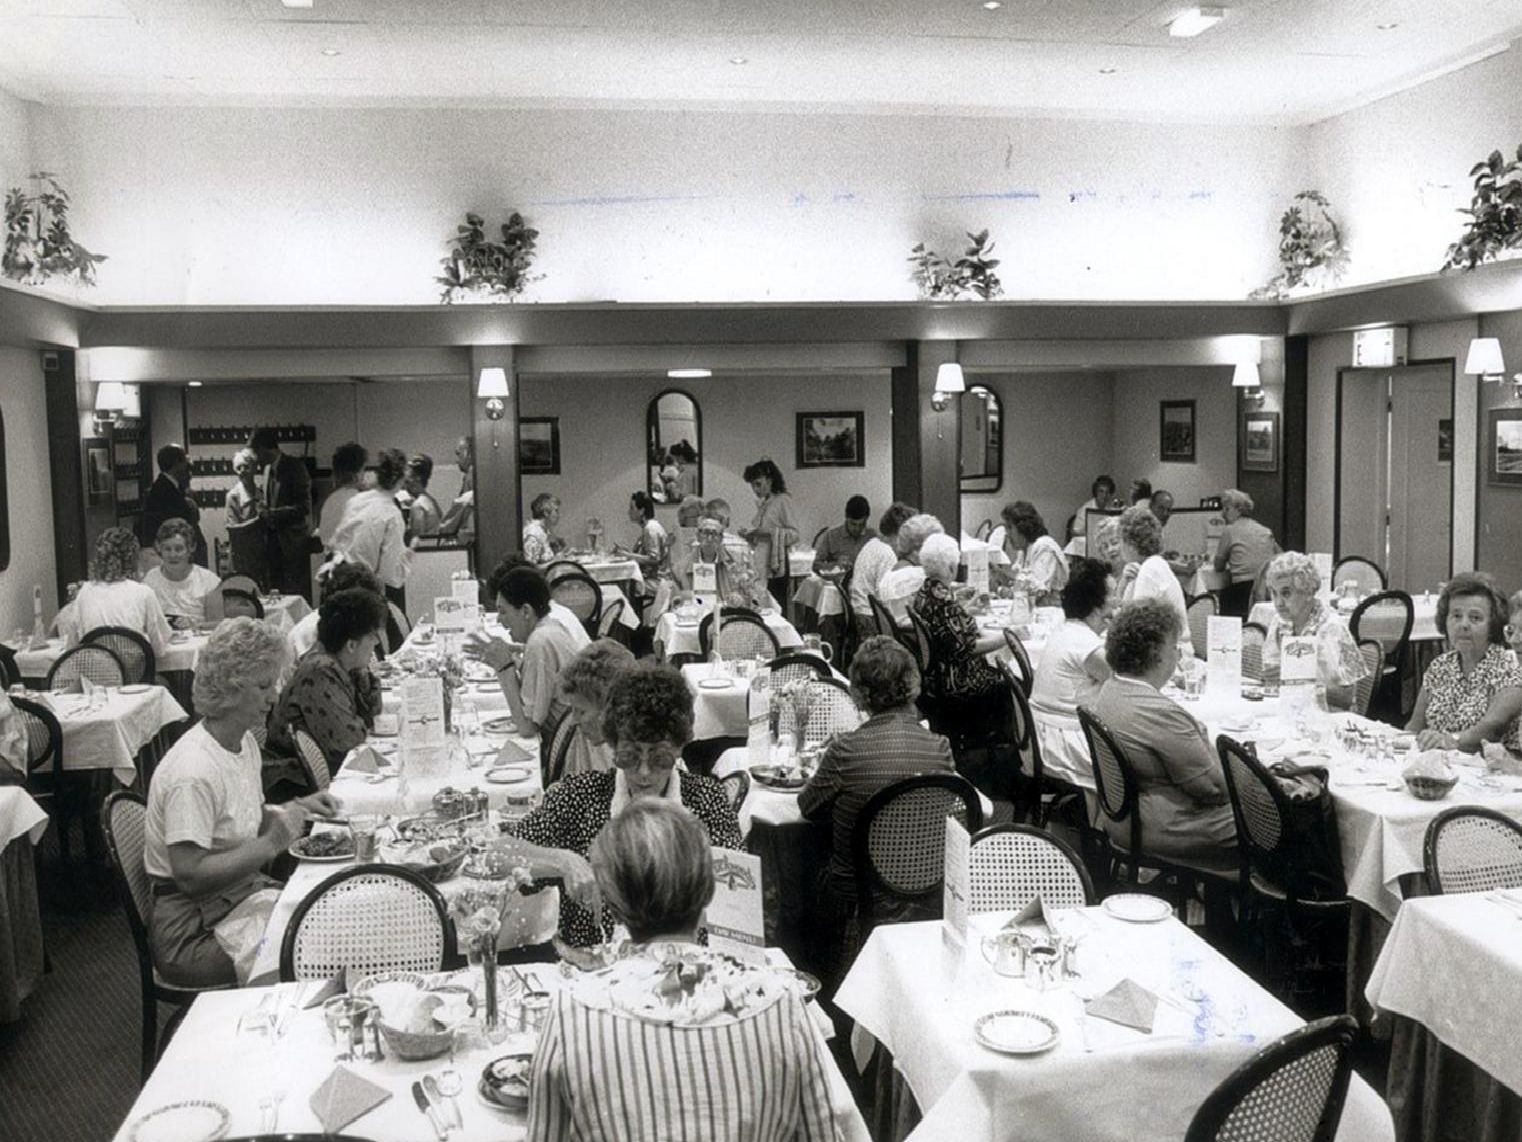 Tuckwoods was one of the city's most popular restaurants and was always packed with diners.